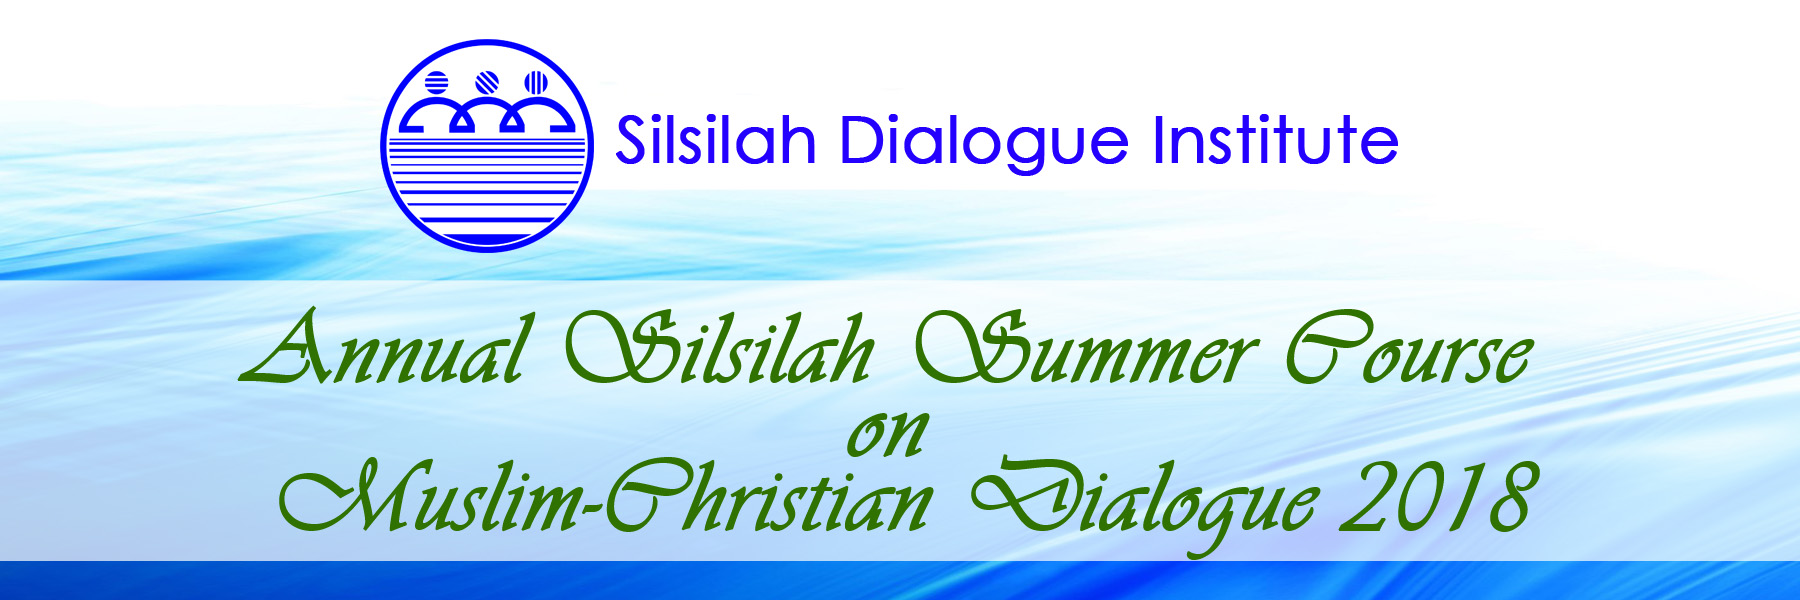 Annual Silsilah Summer Course